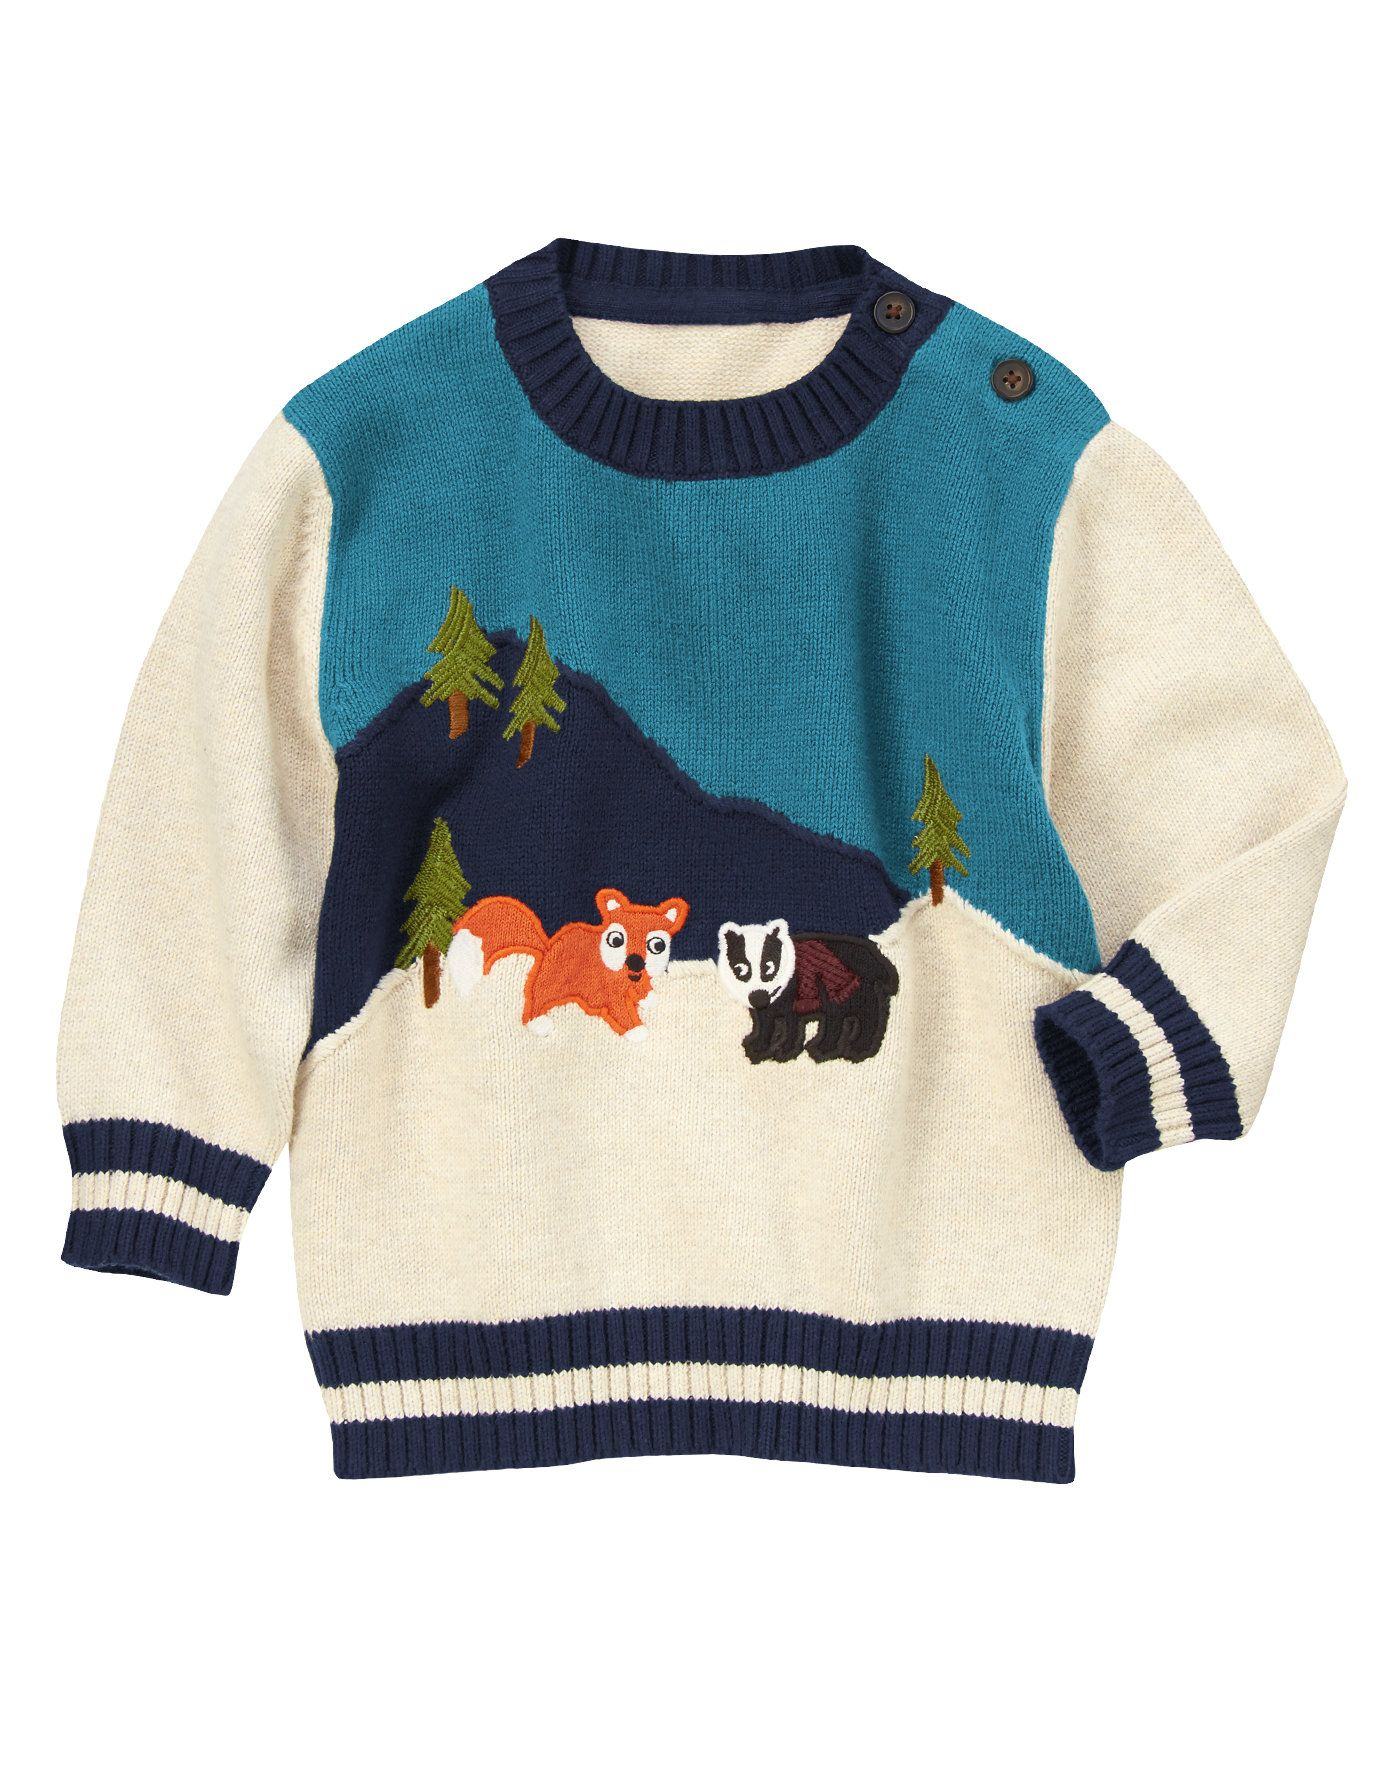 Fox and badger buddies add outdoorsy style to our cozy sweater ...